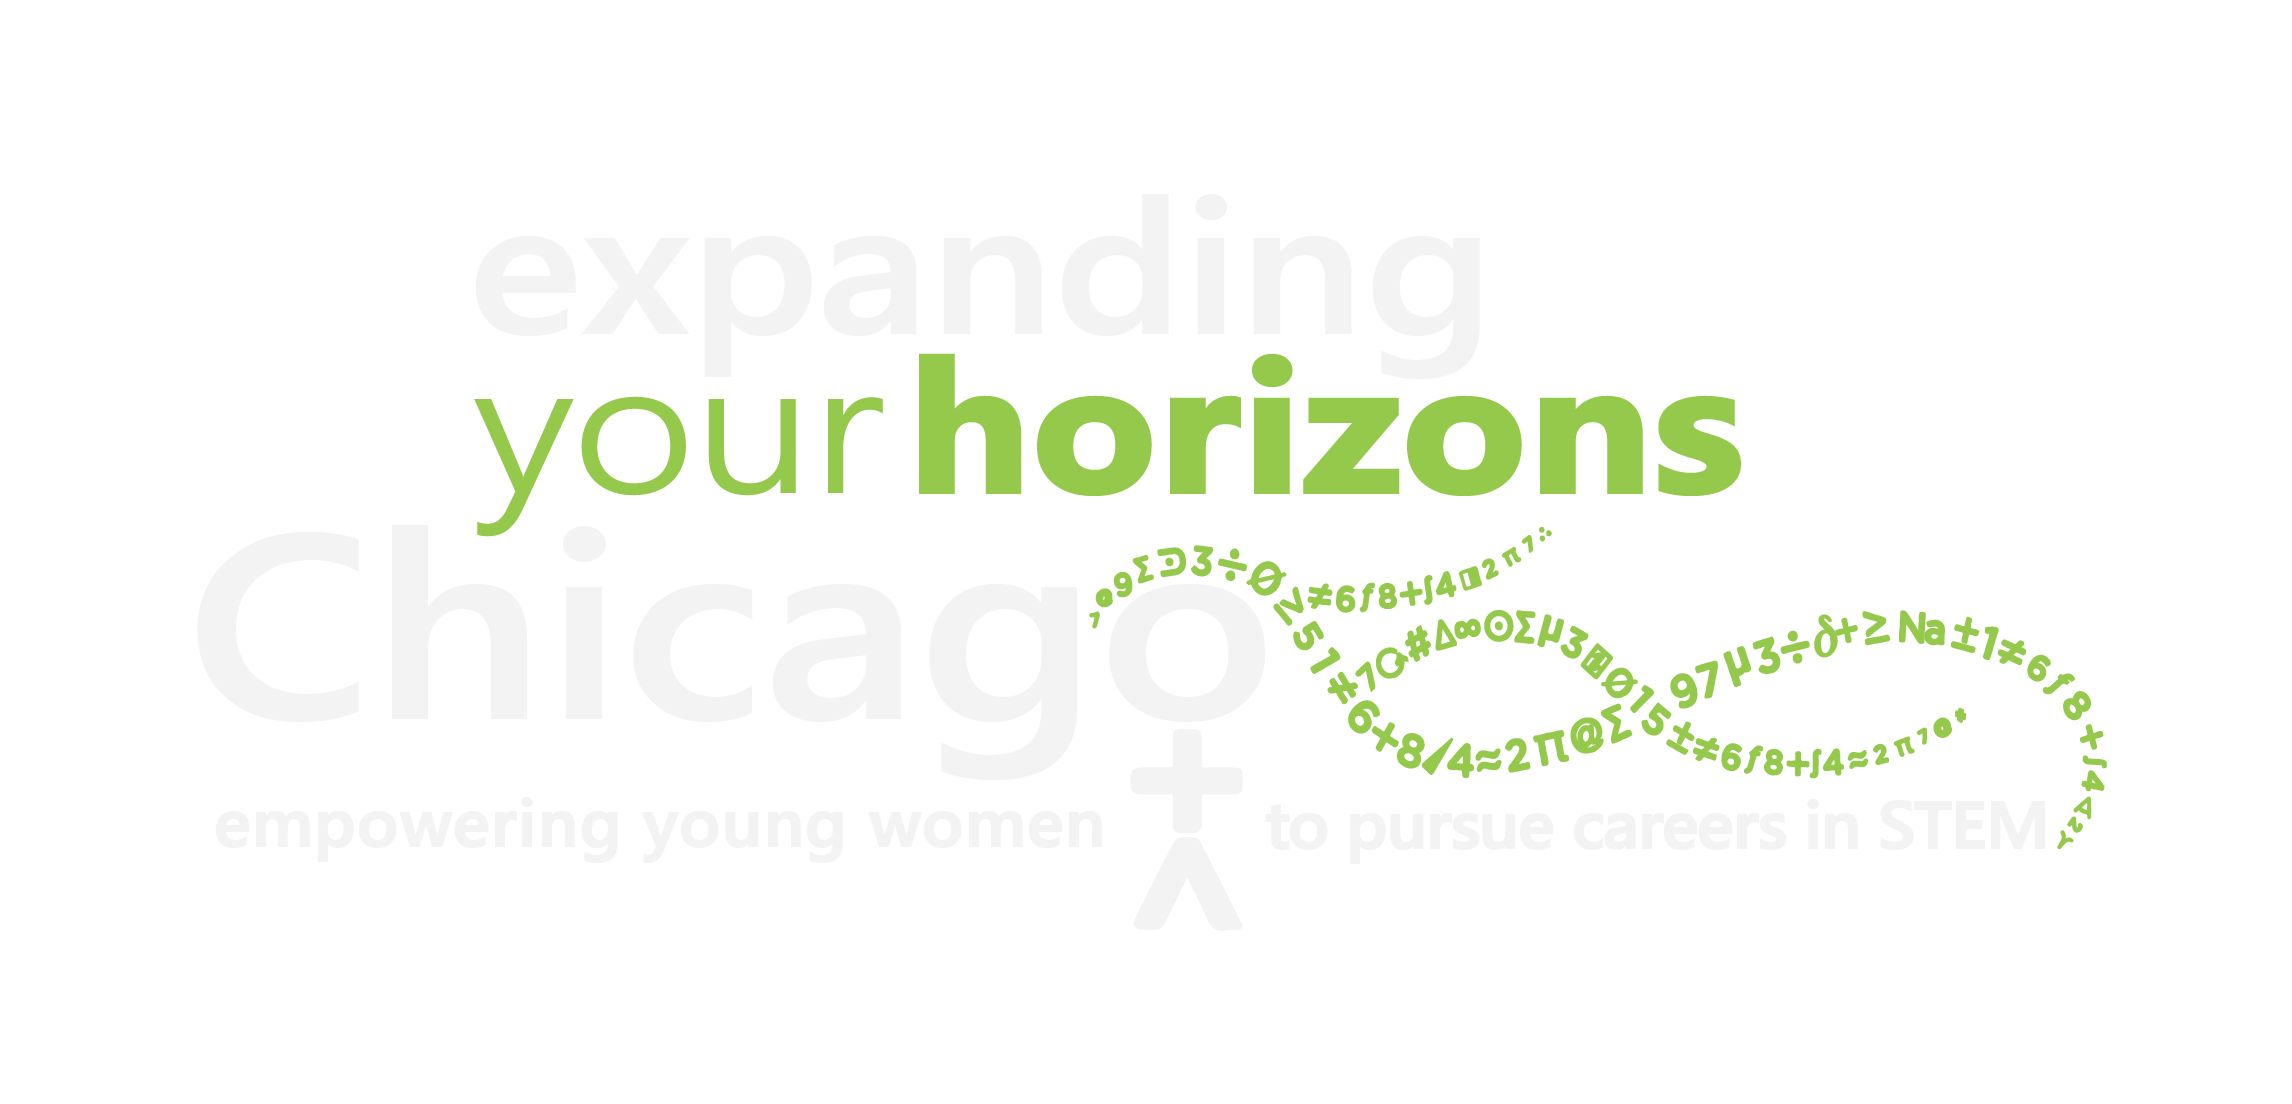 Expanding Your Horizons Chicago